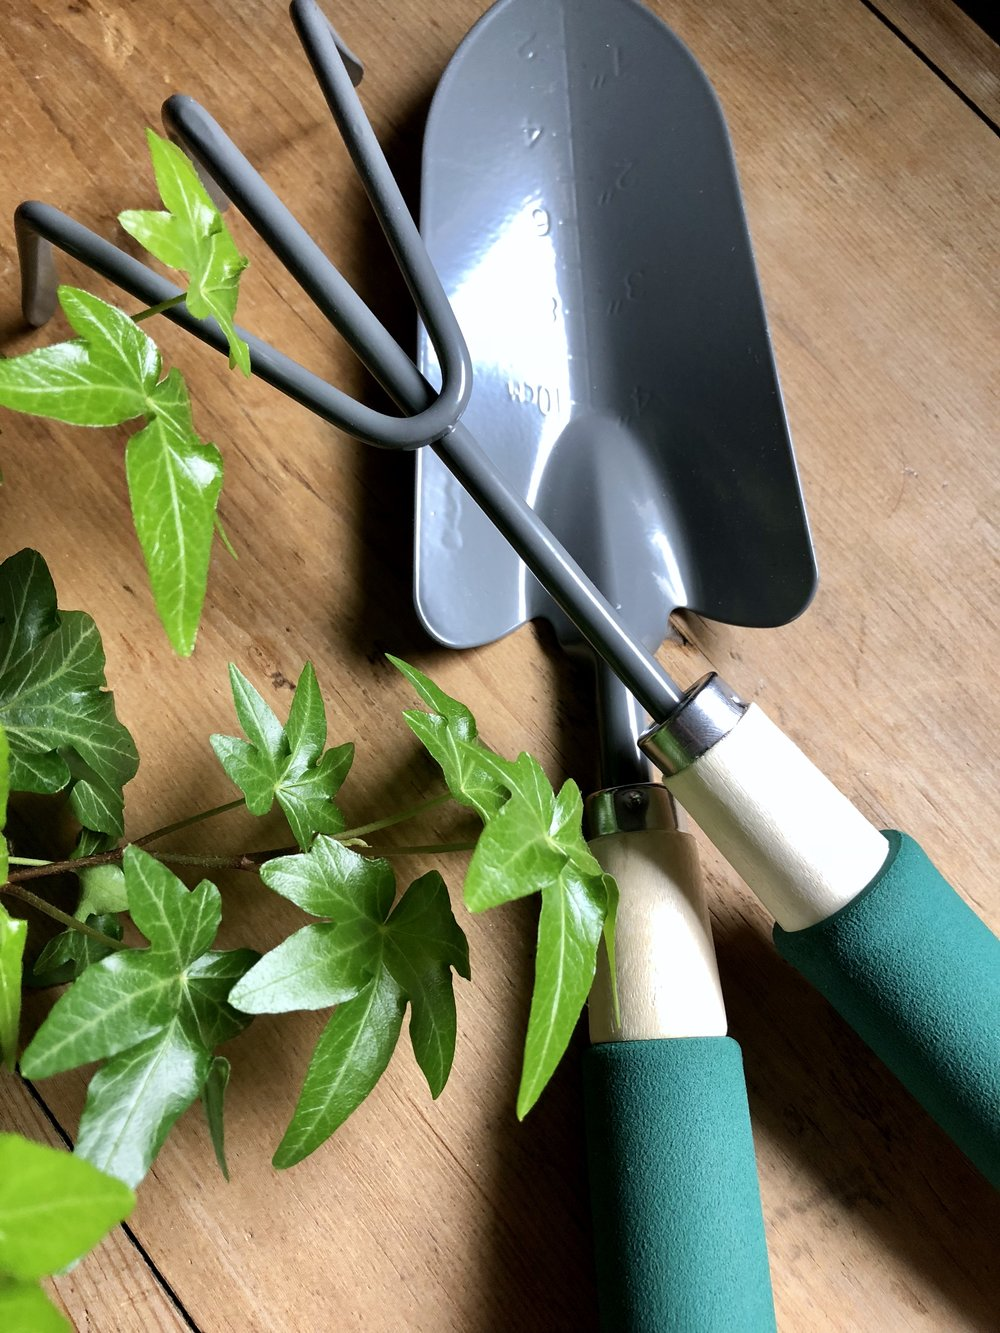 Dollar Store Marbled Gardening Tools for Mother's Day #mothersdaydiy #mothersdaygift #dollarstorediy #dollarstorecraft #greenthumb